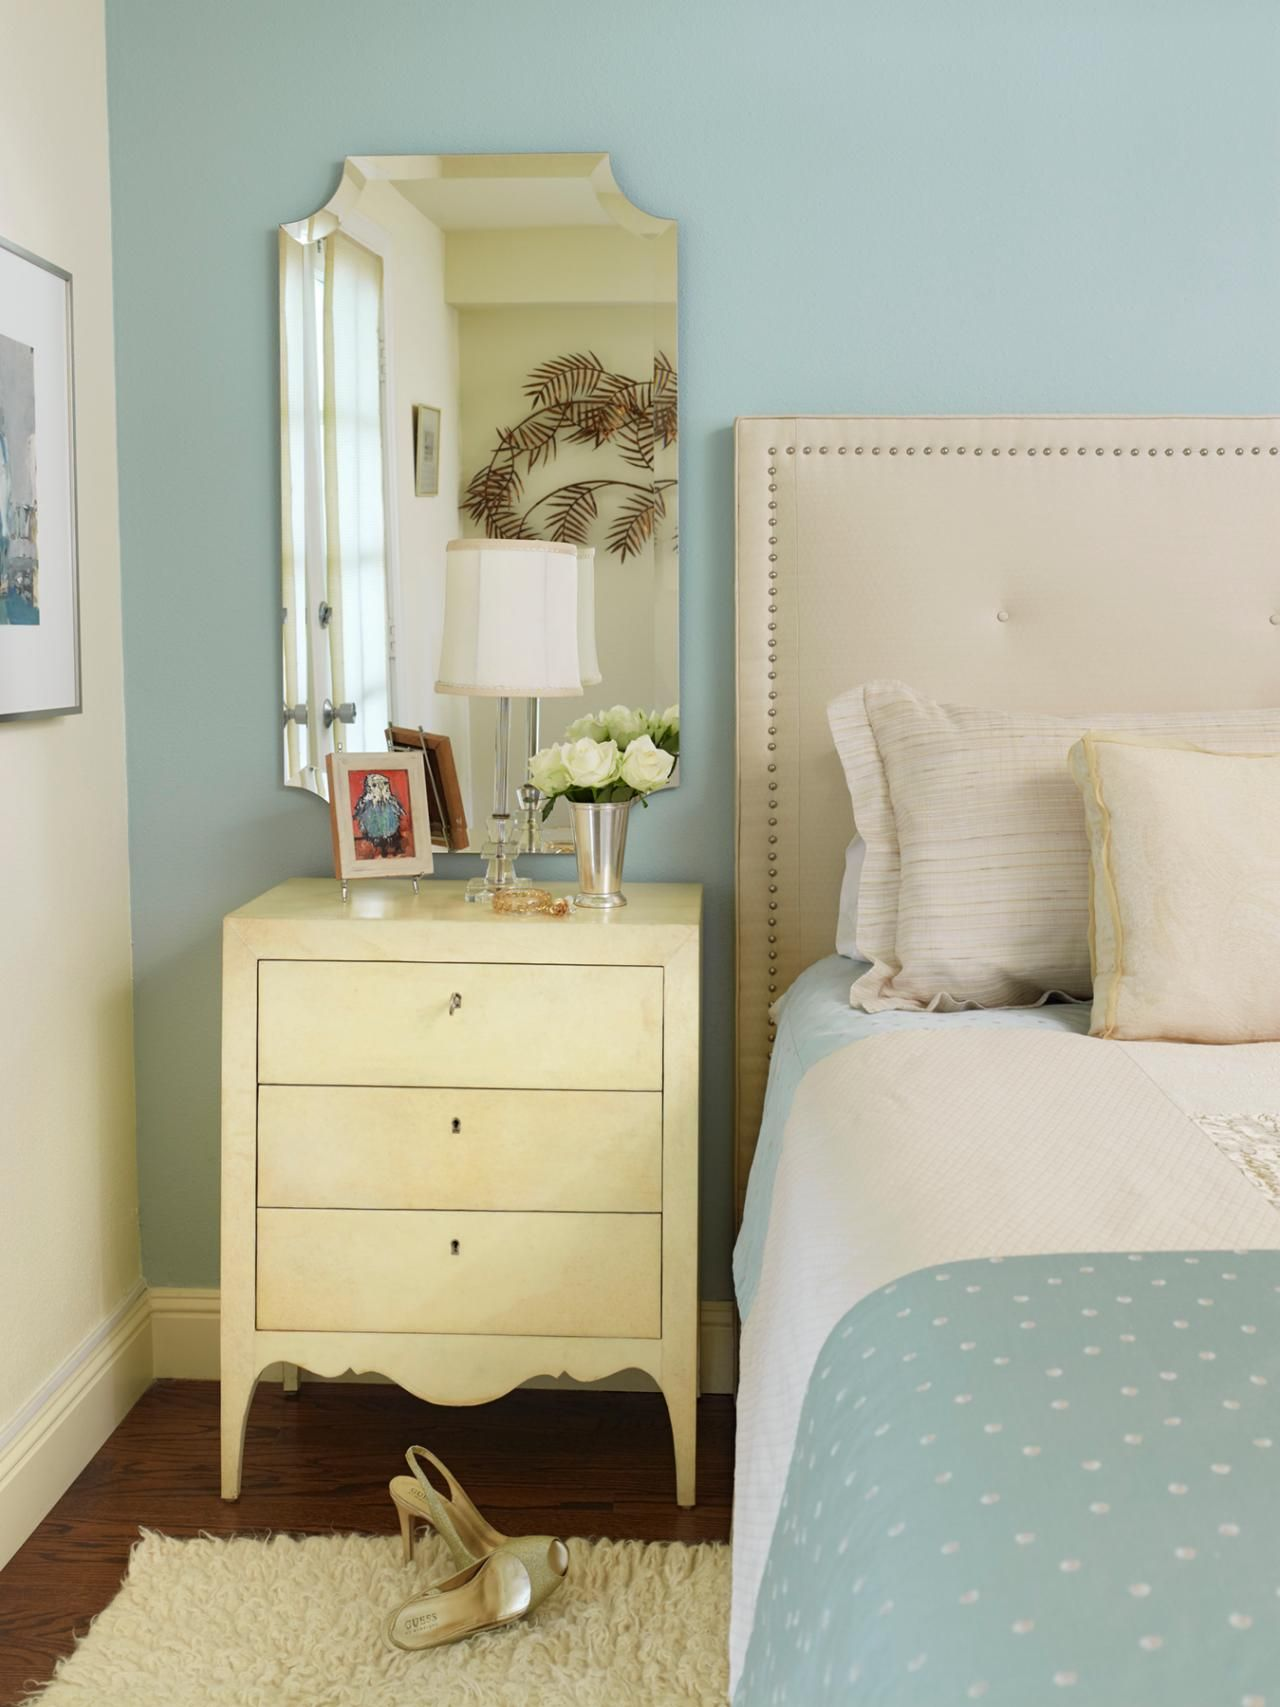 Master bedroom nightstand decor   Tips for Turning Your Guest Bedroom Into a Retreat  Design room